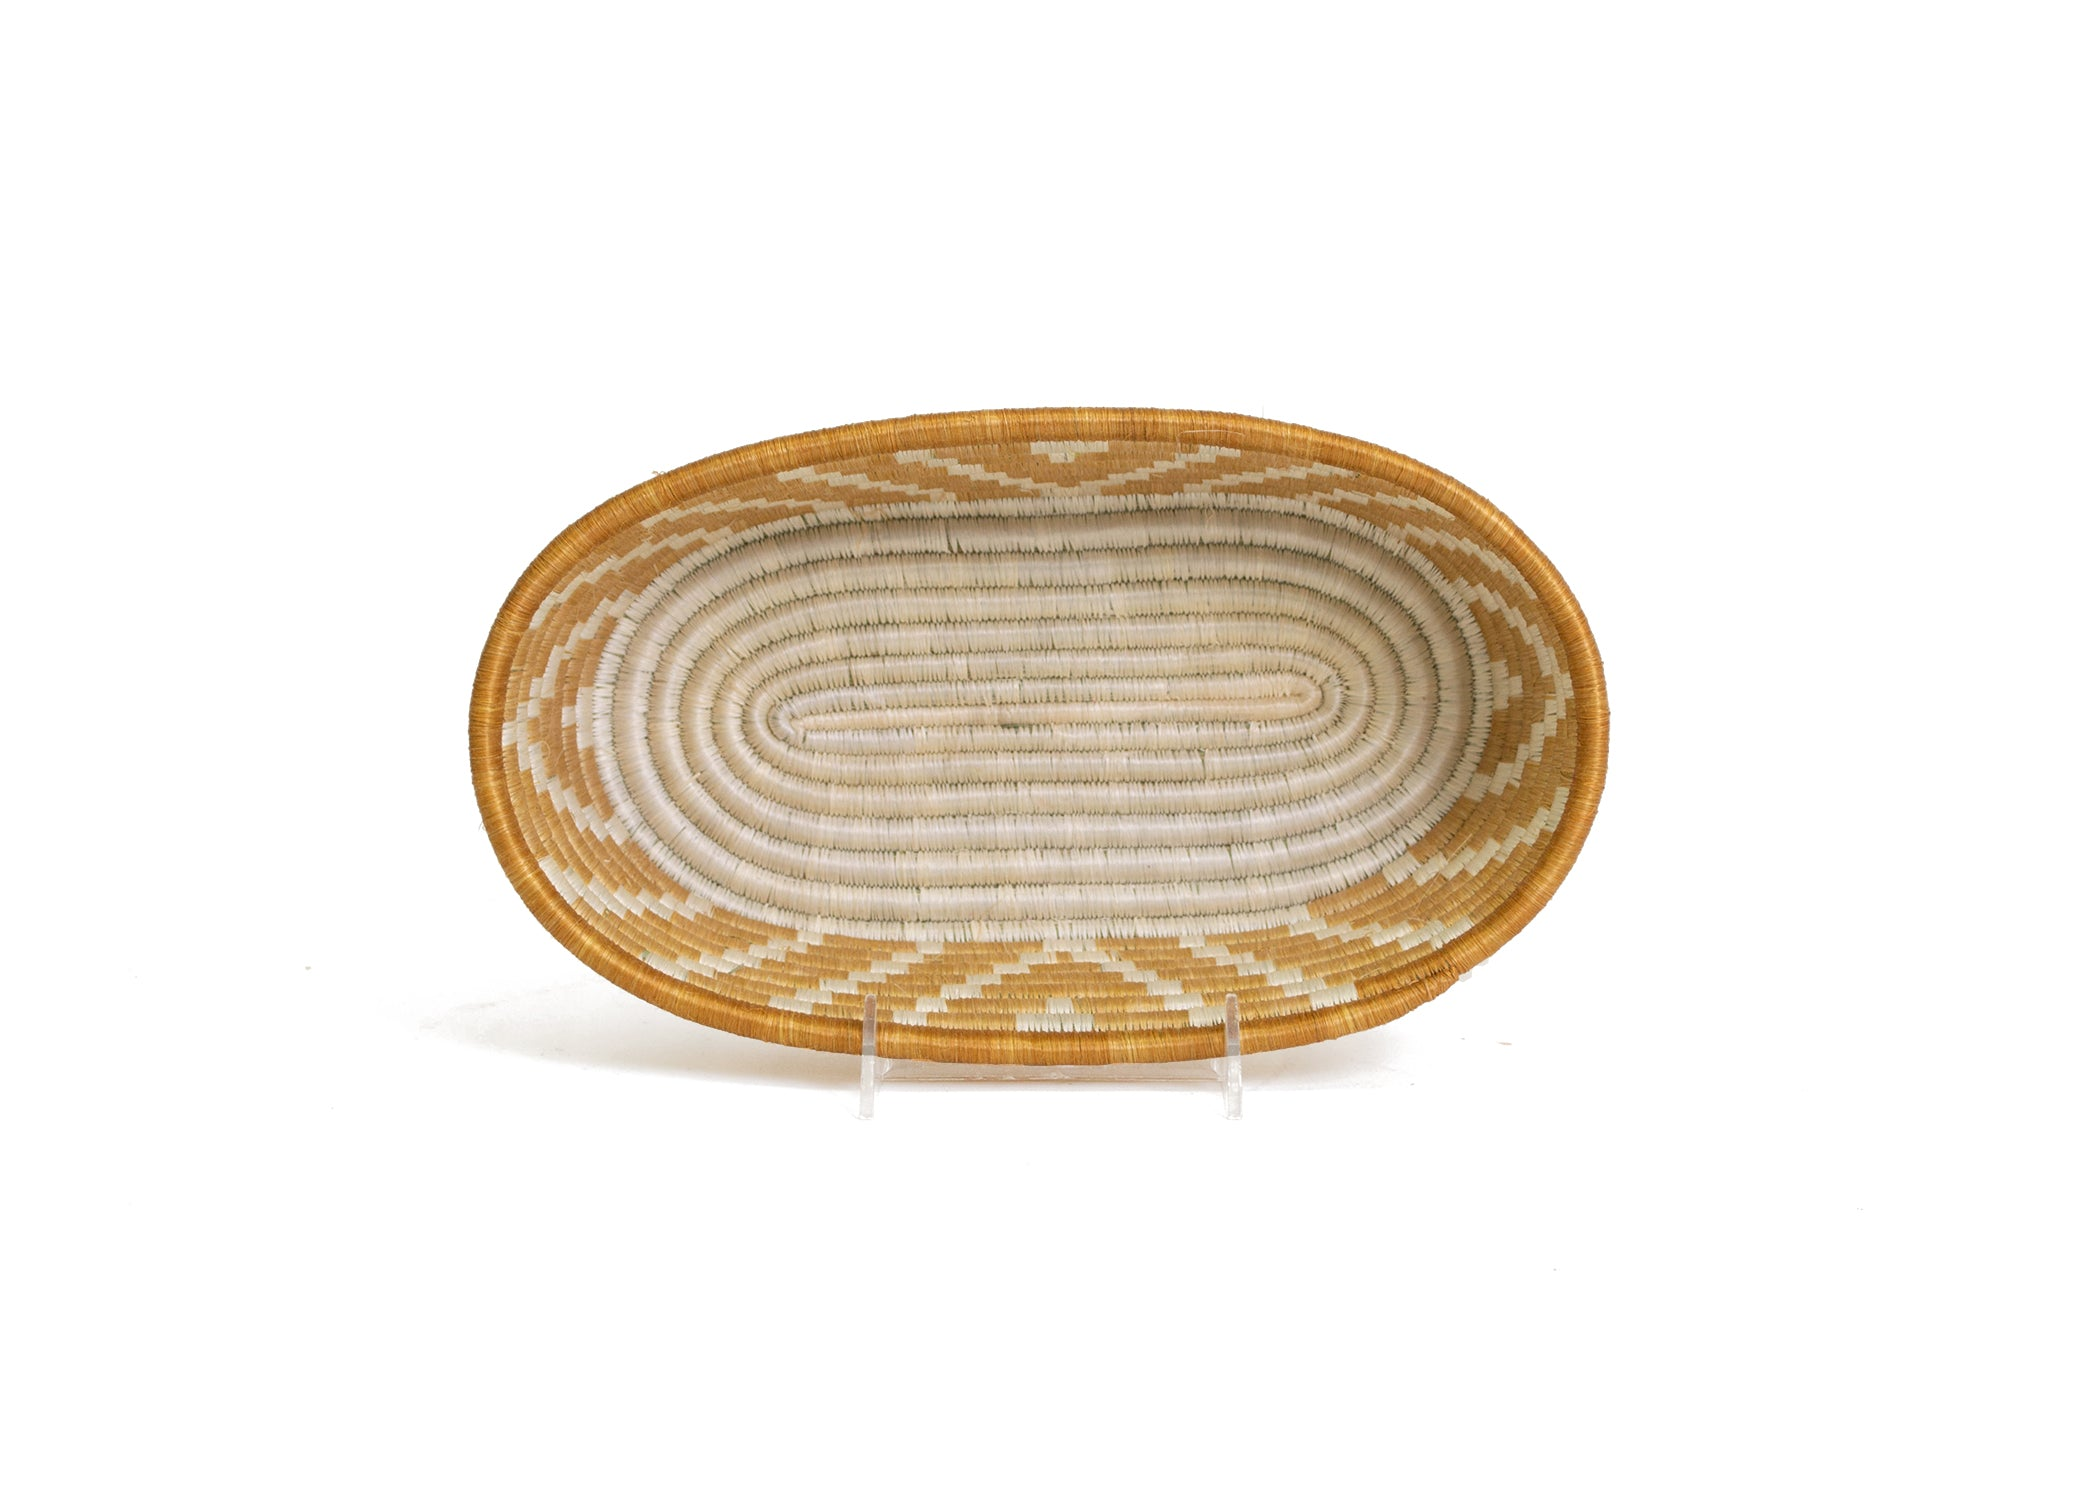 Soft Gold Oval Basket - KAZI - Artisan made high quality home decor and wall art